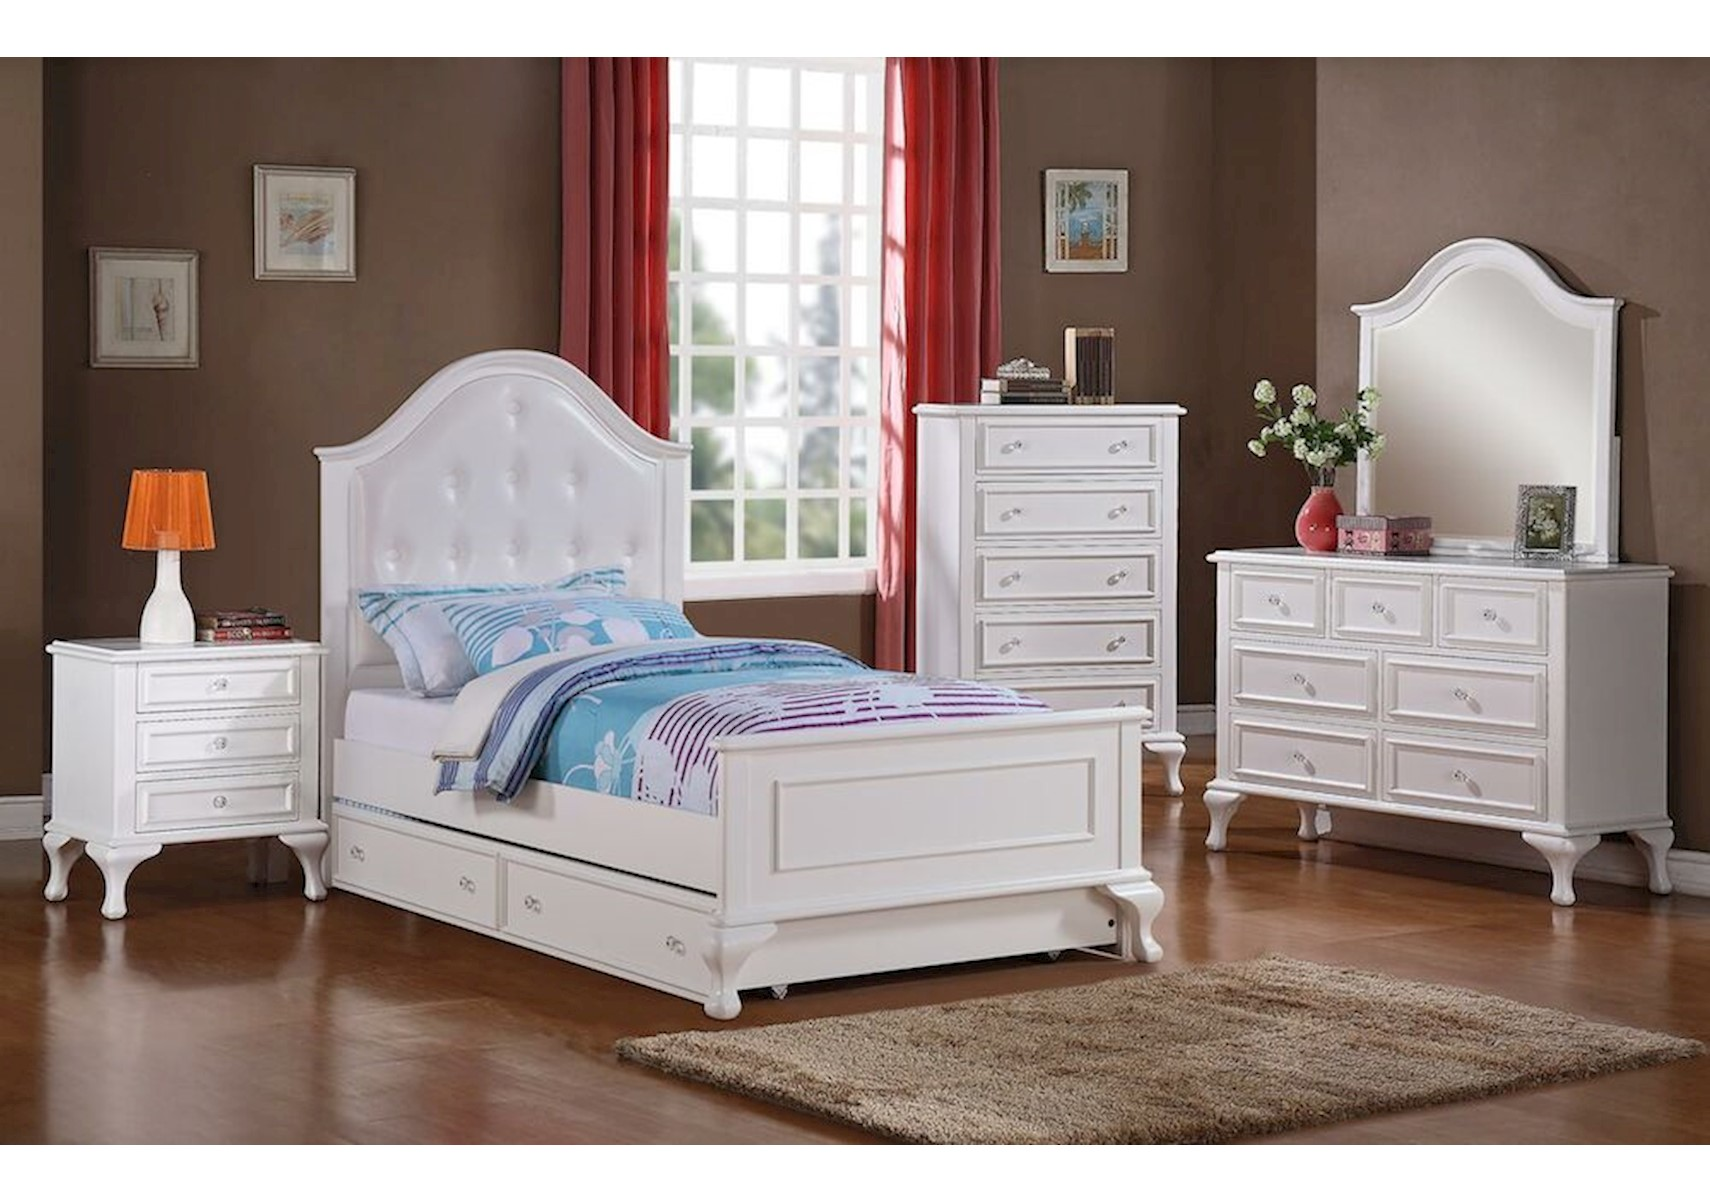 Lacks | Jesse 4-Pc Kids Full Bedroom Set